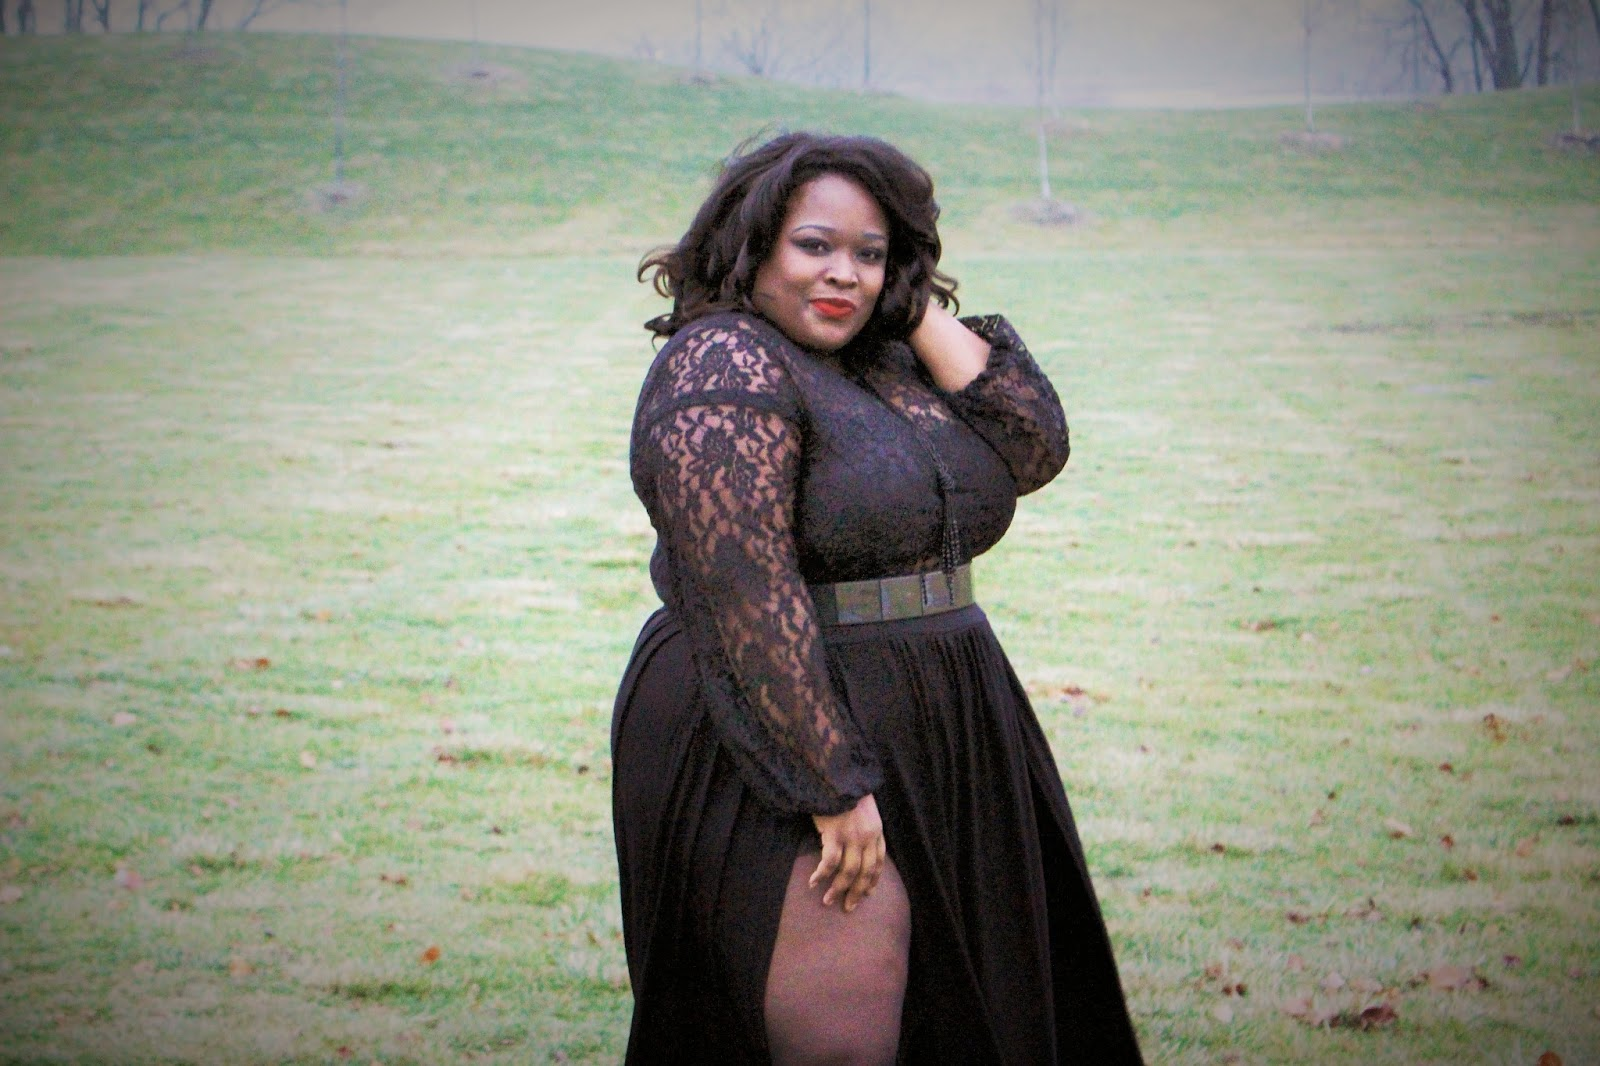 vest bbw personals Big and beautiful singles put bbpeoplemeetcom on the top of their list for bbw dating sites it's free to search for single men or big beautiful women use bbw personals to find your soul.